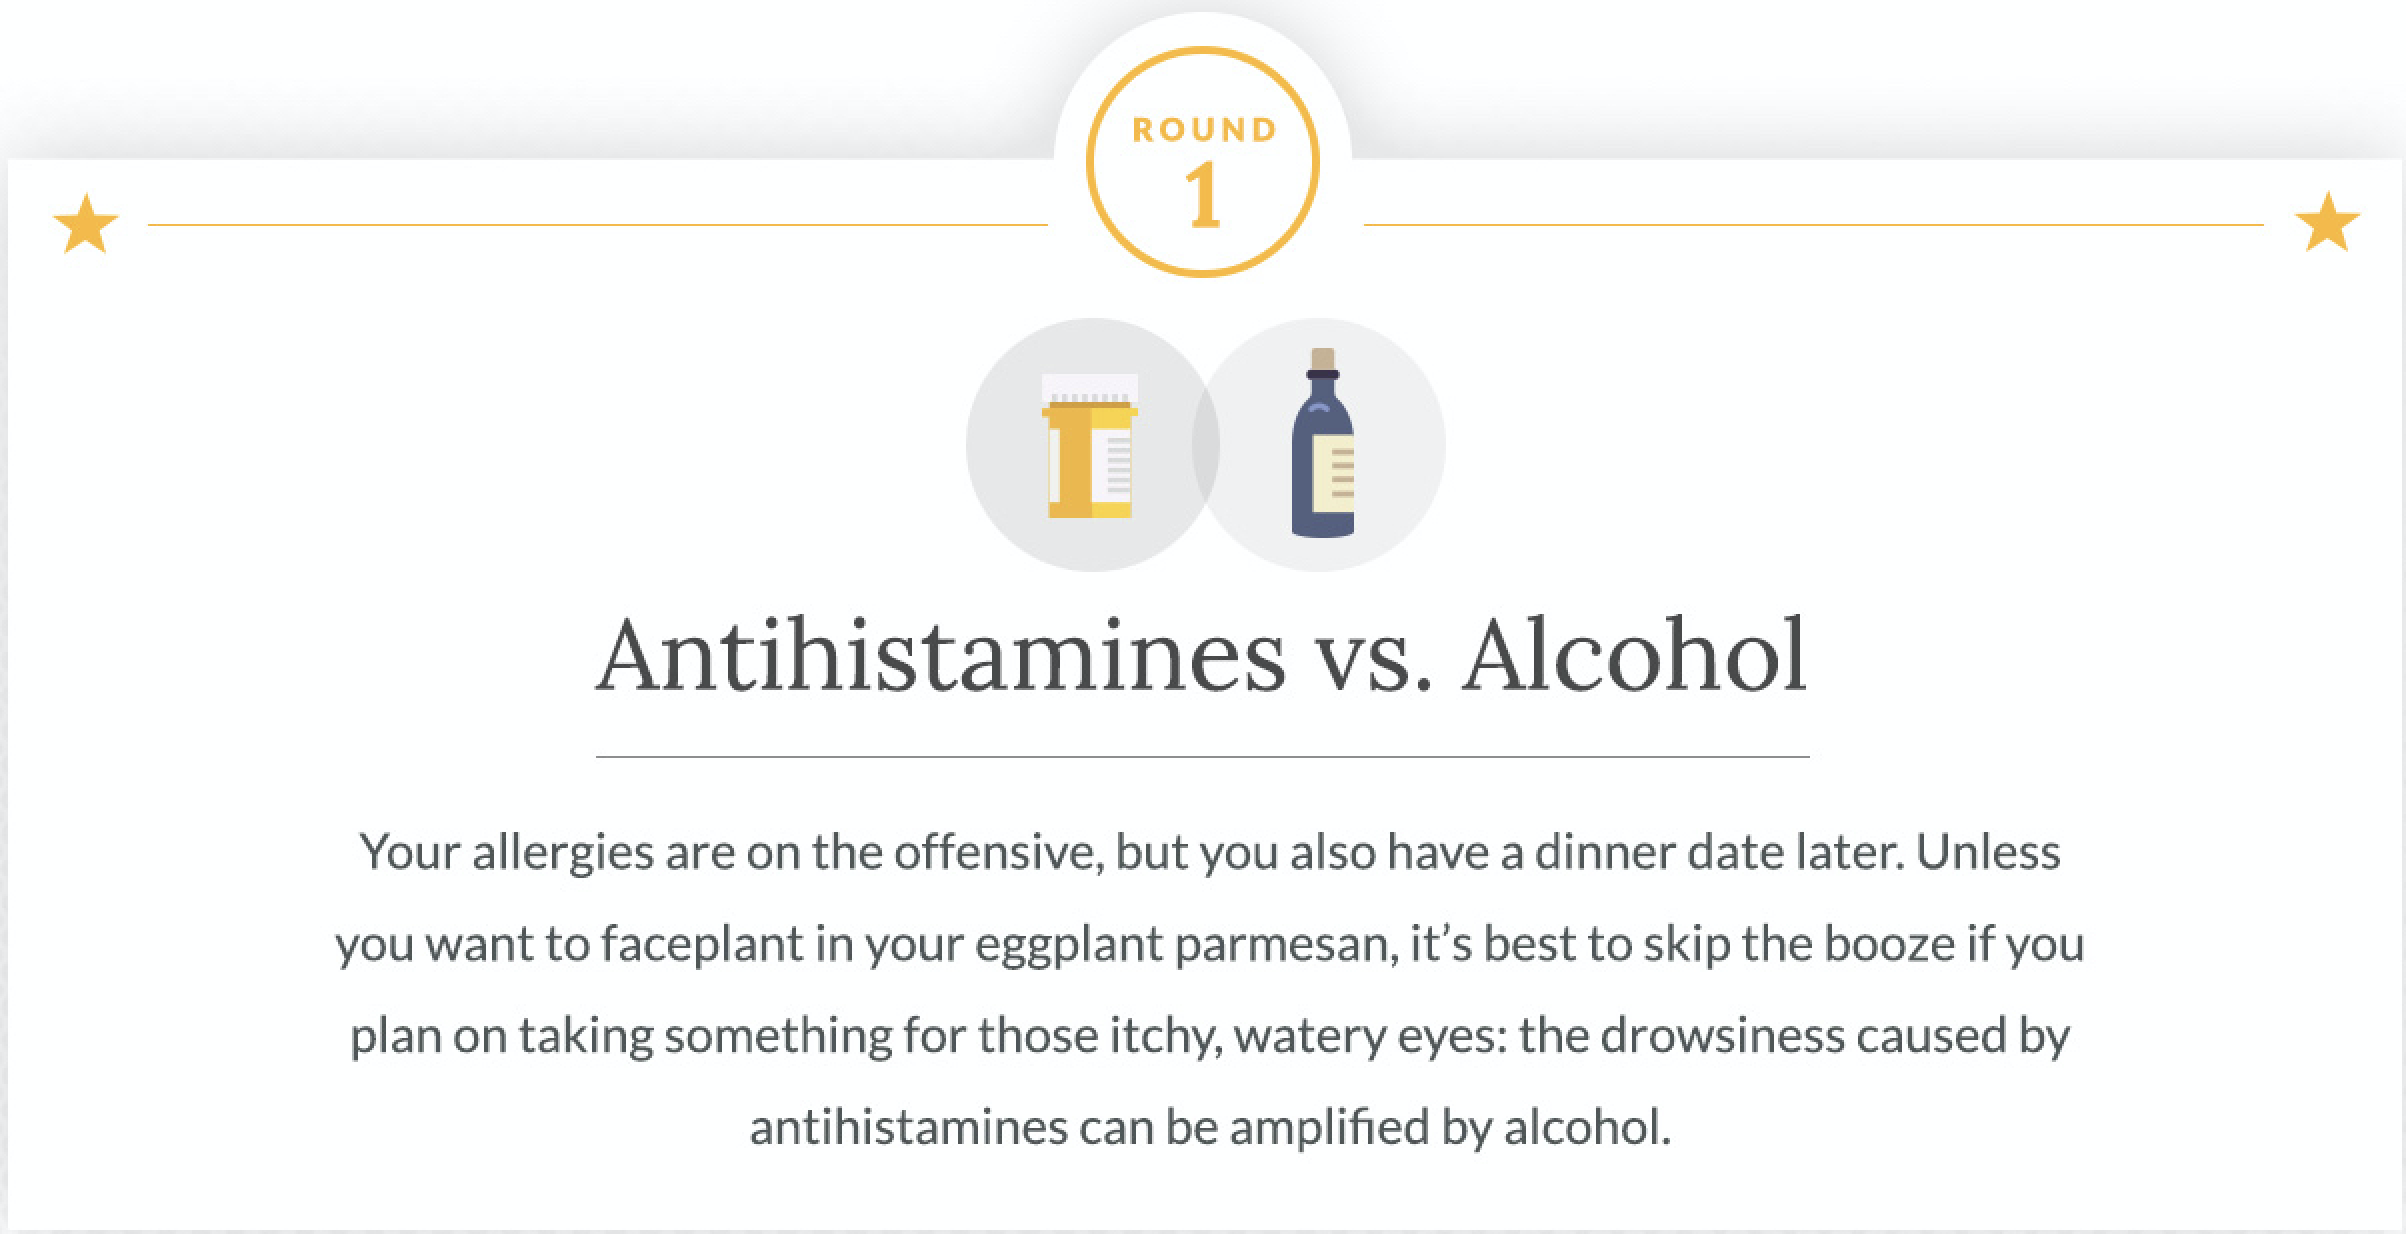 Antihistamines vs. Alcohol